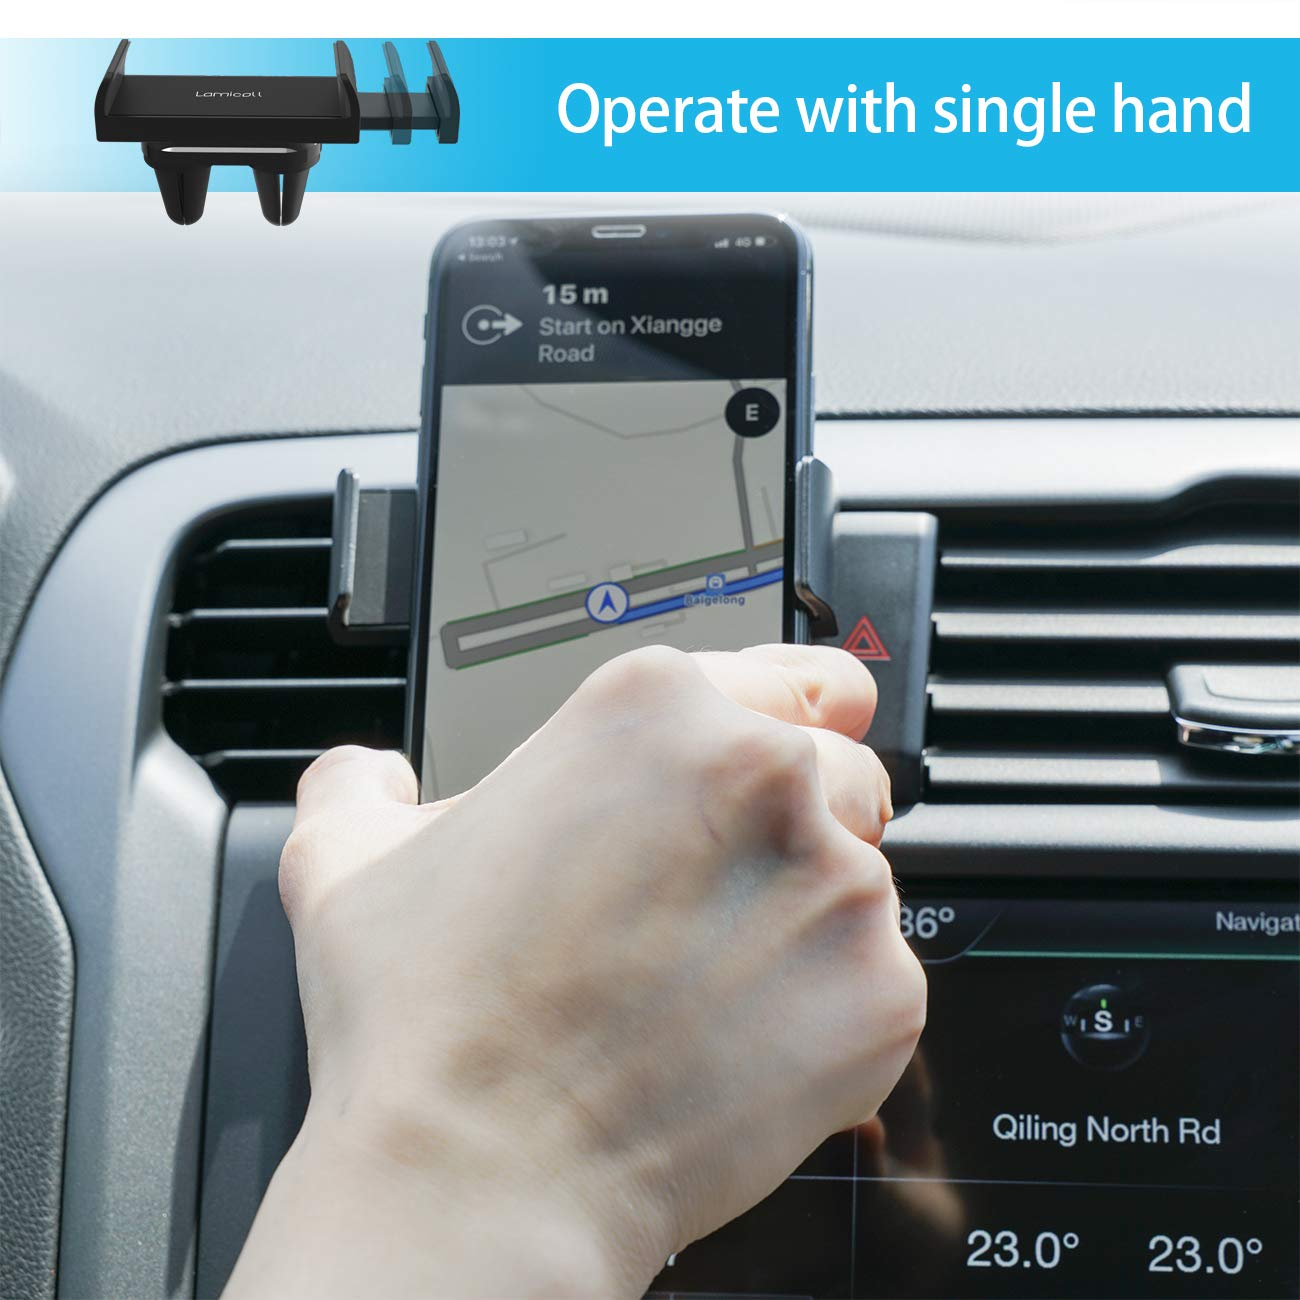 Car Phone Mount, Lamicall Car Vent Holder : Universal Stand Cradle Holder Compatible with Phone Xs Max XR 8 X 8P 7 7P 6S 6P 6, Samsung Galaxy S5 S6 S8 S9 S8+ S9+, Google, LG, Huawei, Other Smartphone by Lamicall (Image #2)